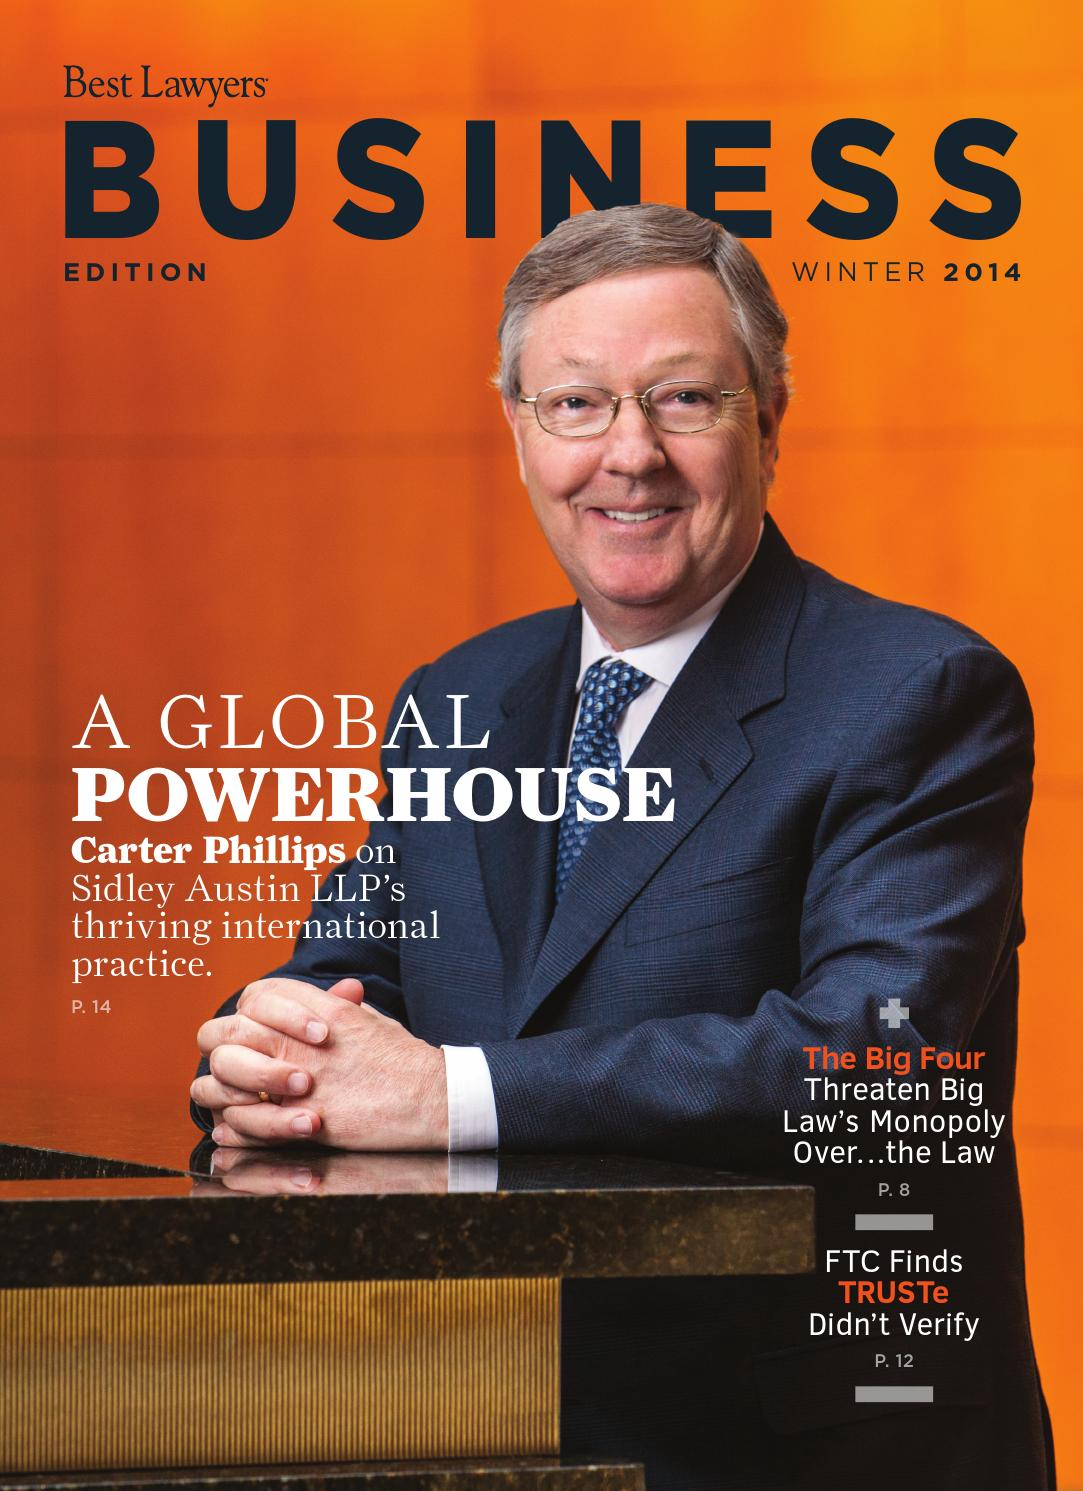 Best Lawyers Winter Business Edition 2014 By Best Lawyers